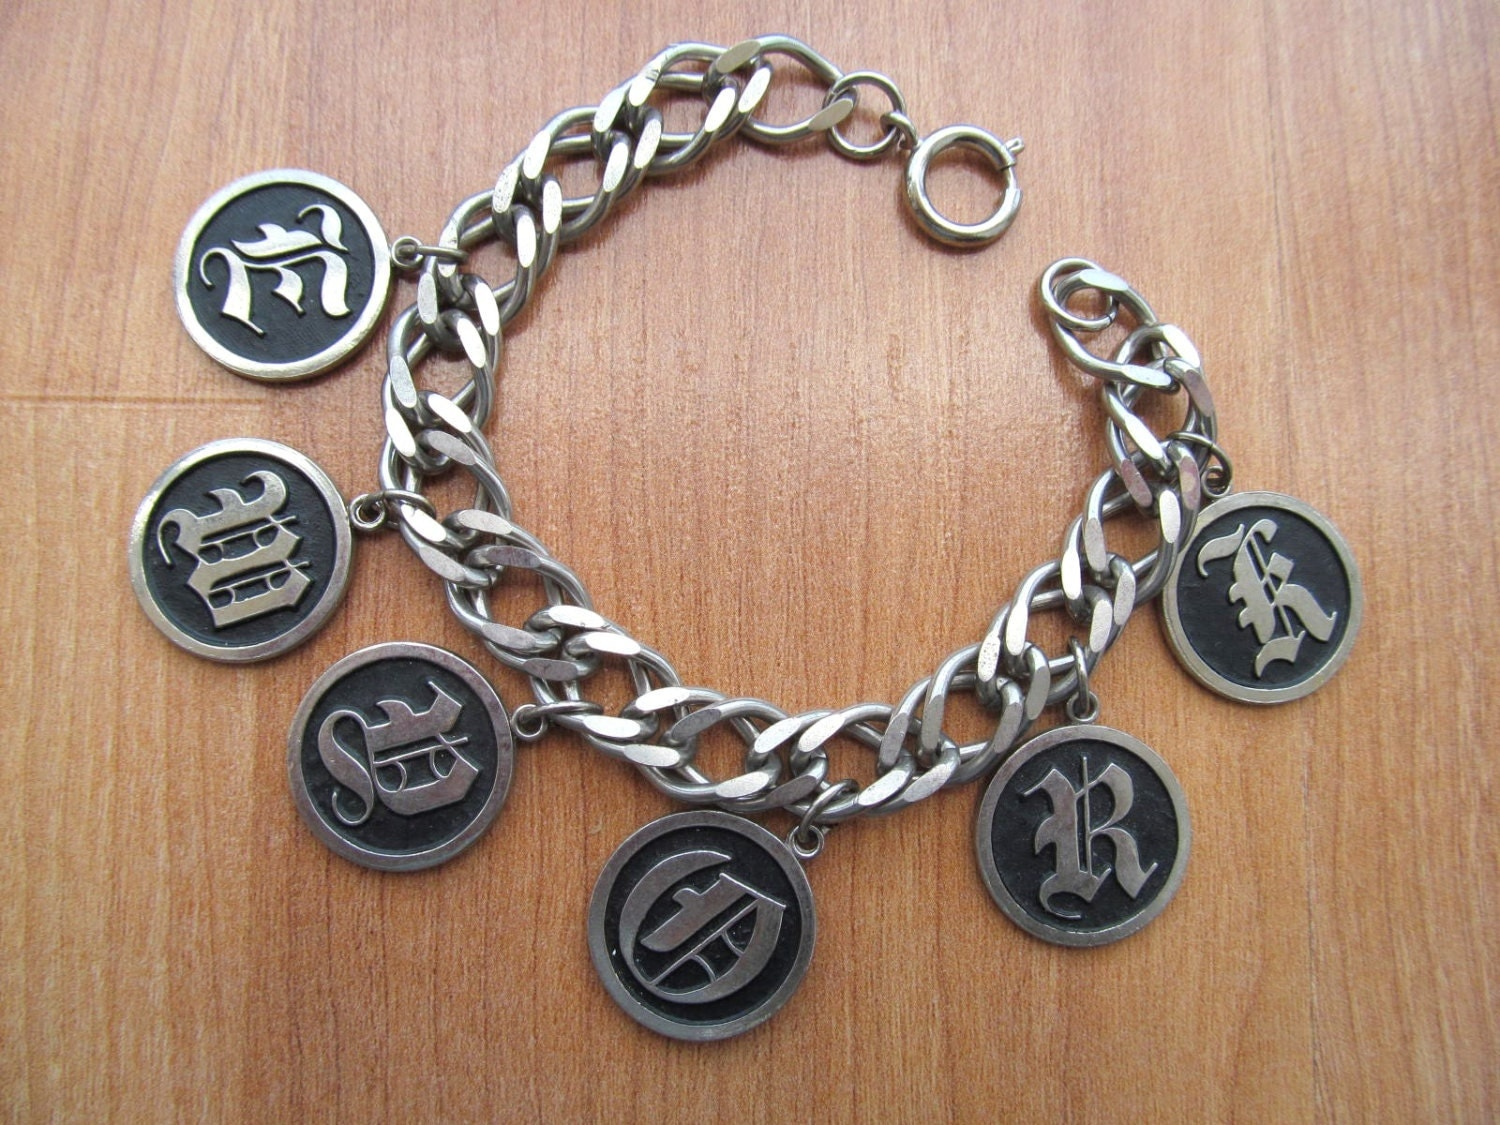 vintage initial charm bracelet in text